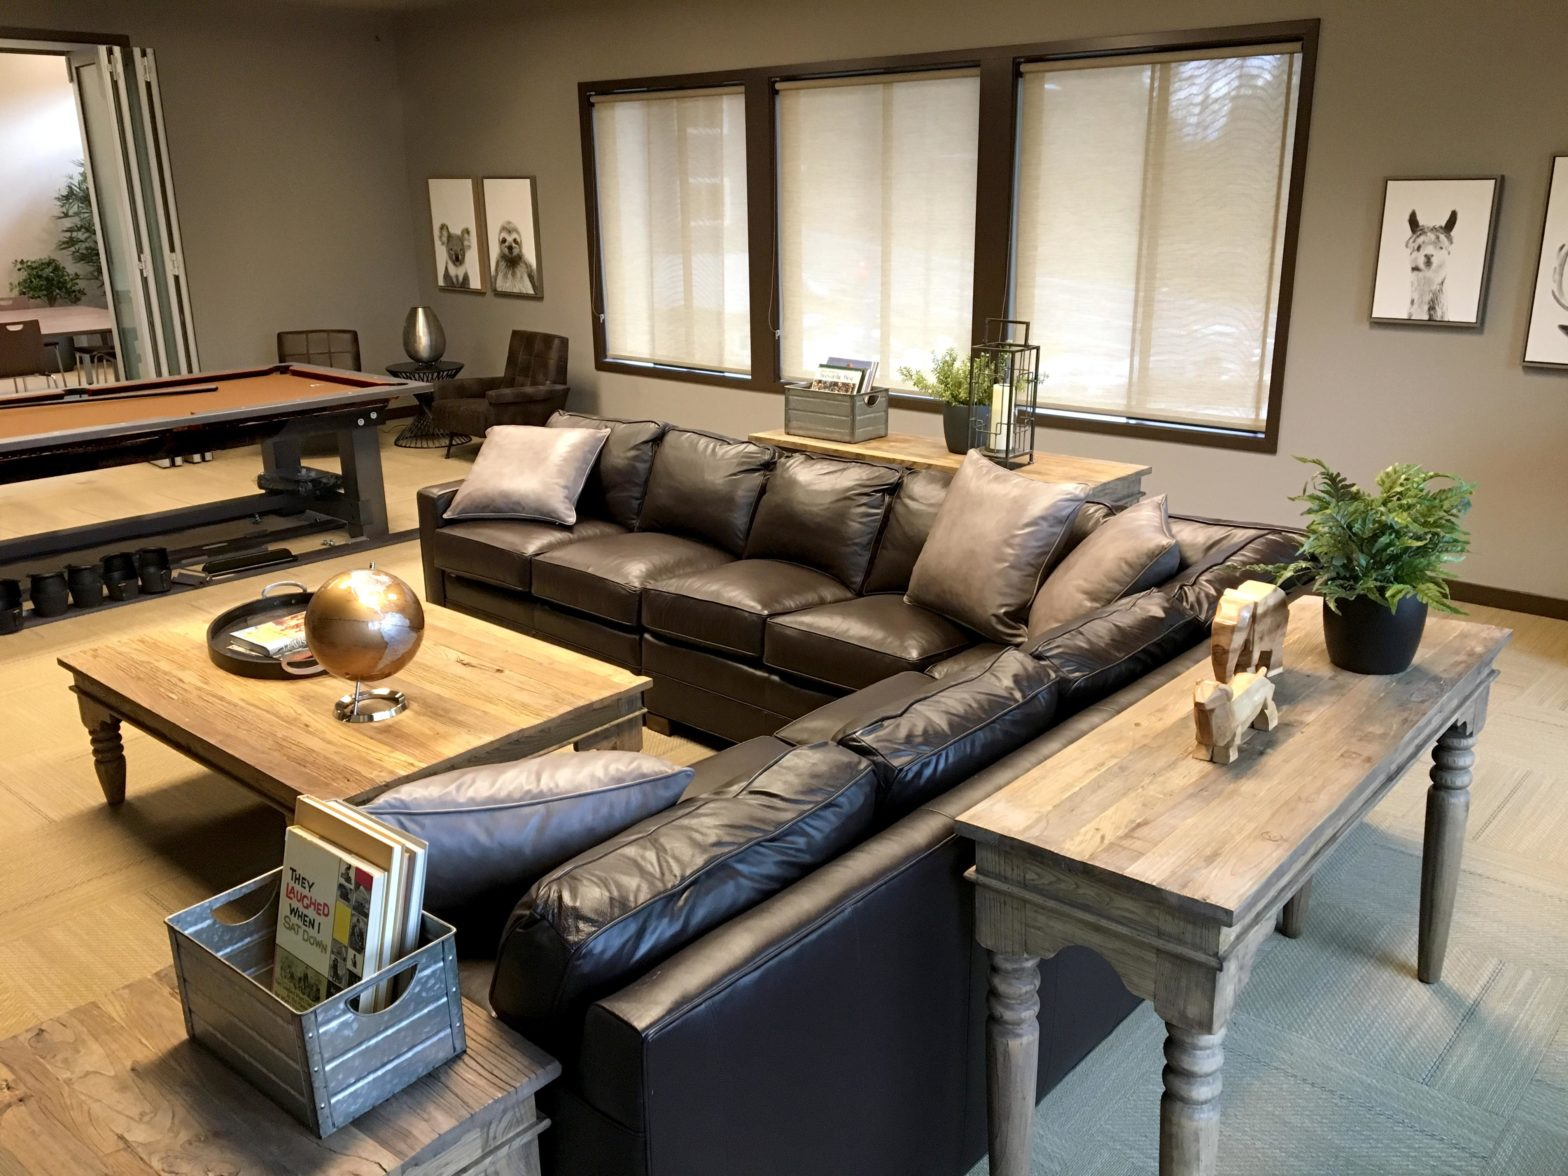 Rec Center With Black Leather Sectional Sofa and Pool Table